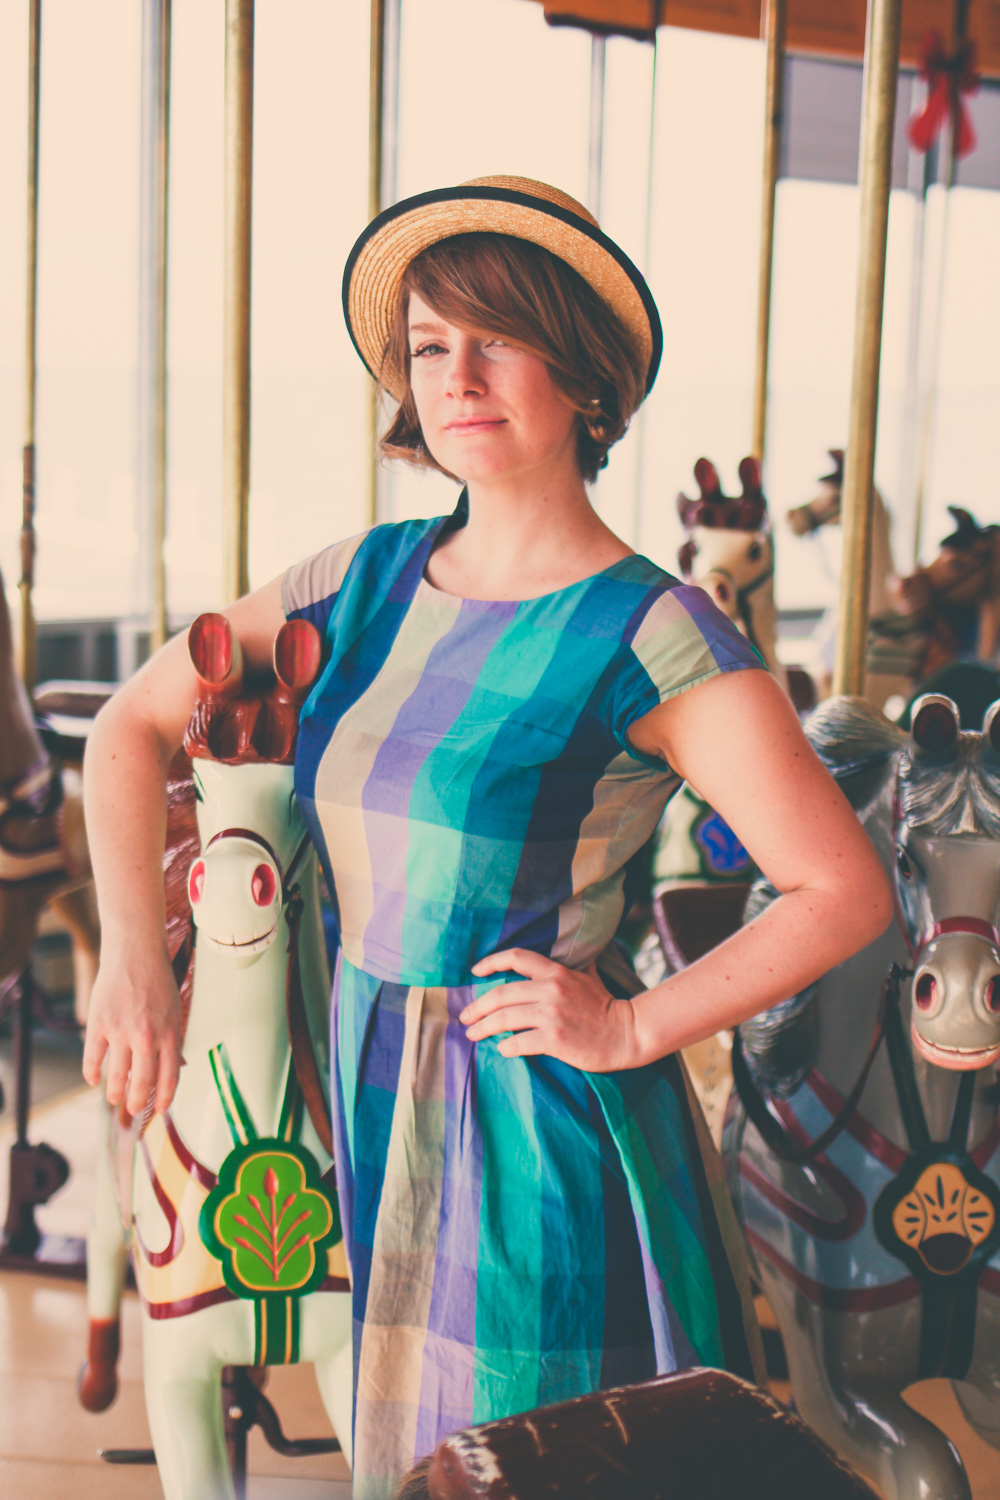 @findingfemme in Shabby Apply check dress on carousel in Geelong